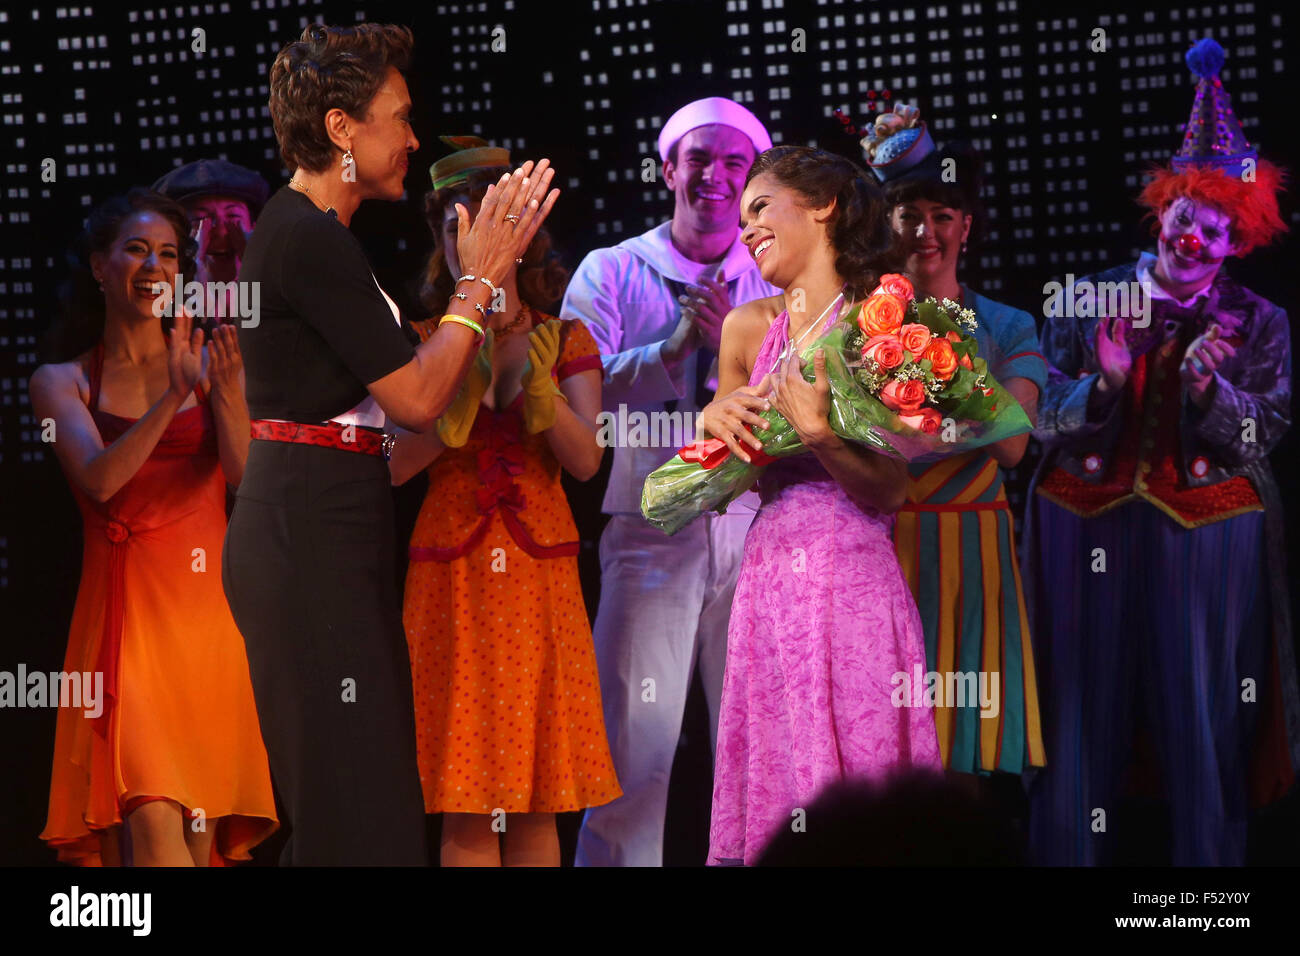 Misty Copeland makes her Broadway debut in On The Town at the Lyric Theatre - Curtain Call.  Featuring: Robin Roberts, - Stock Image